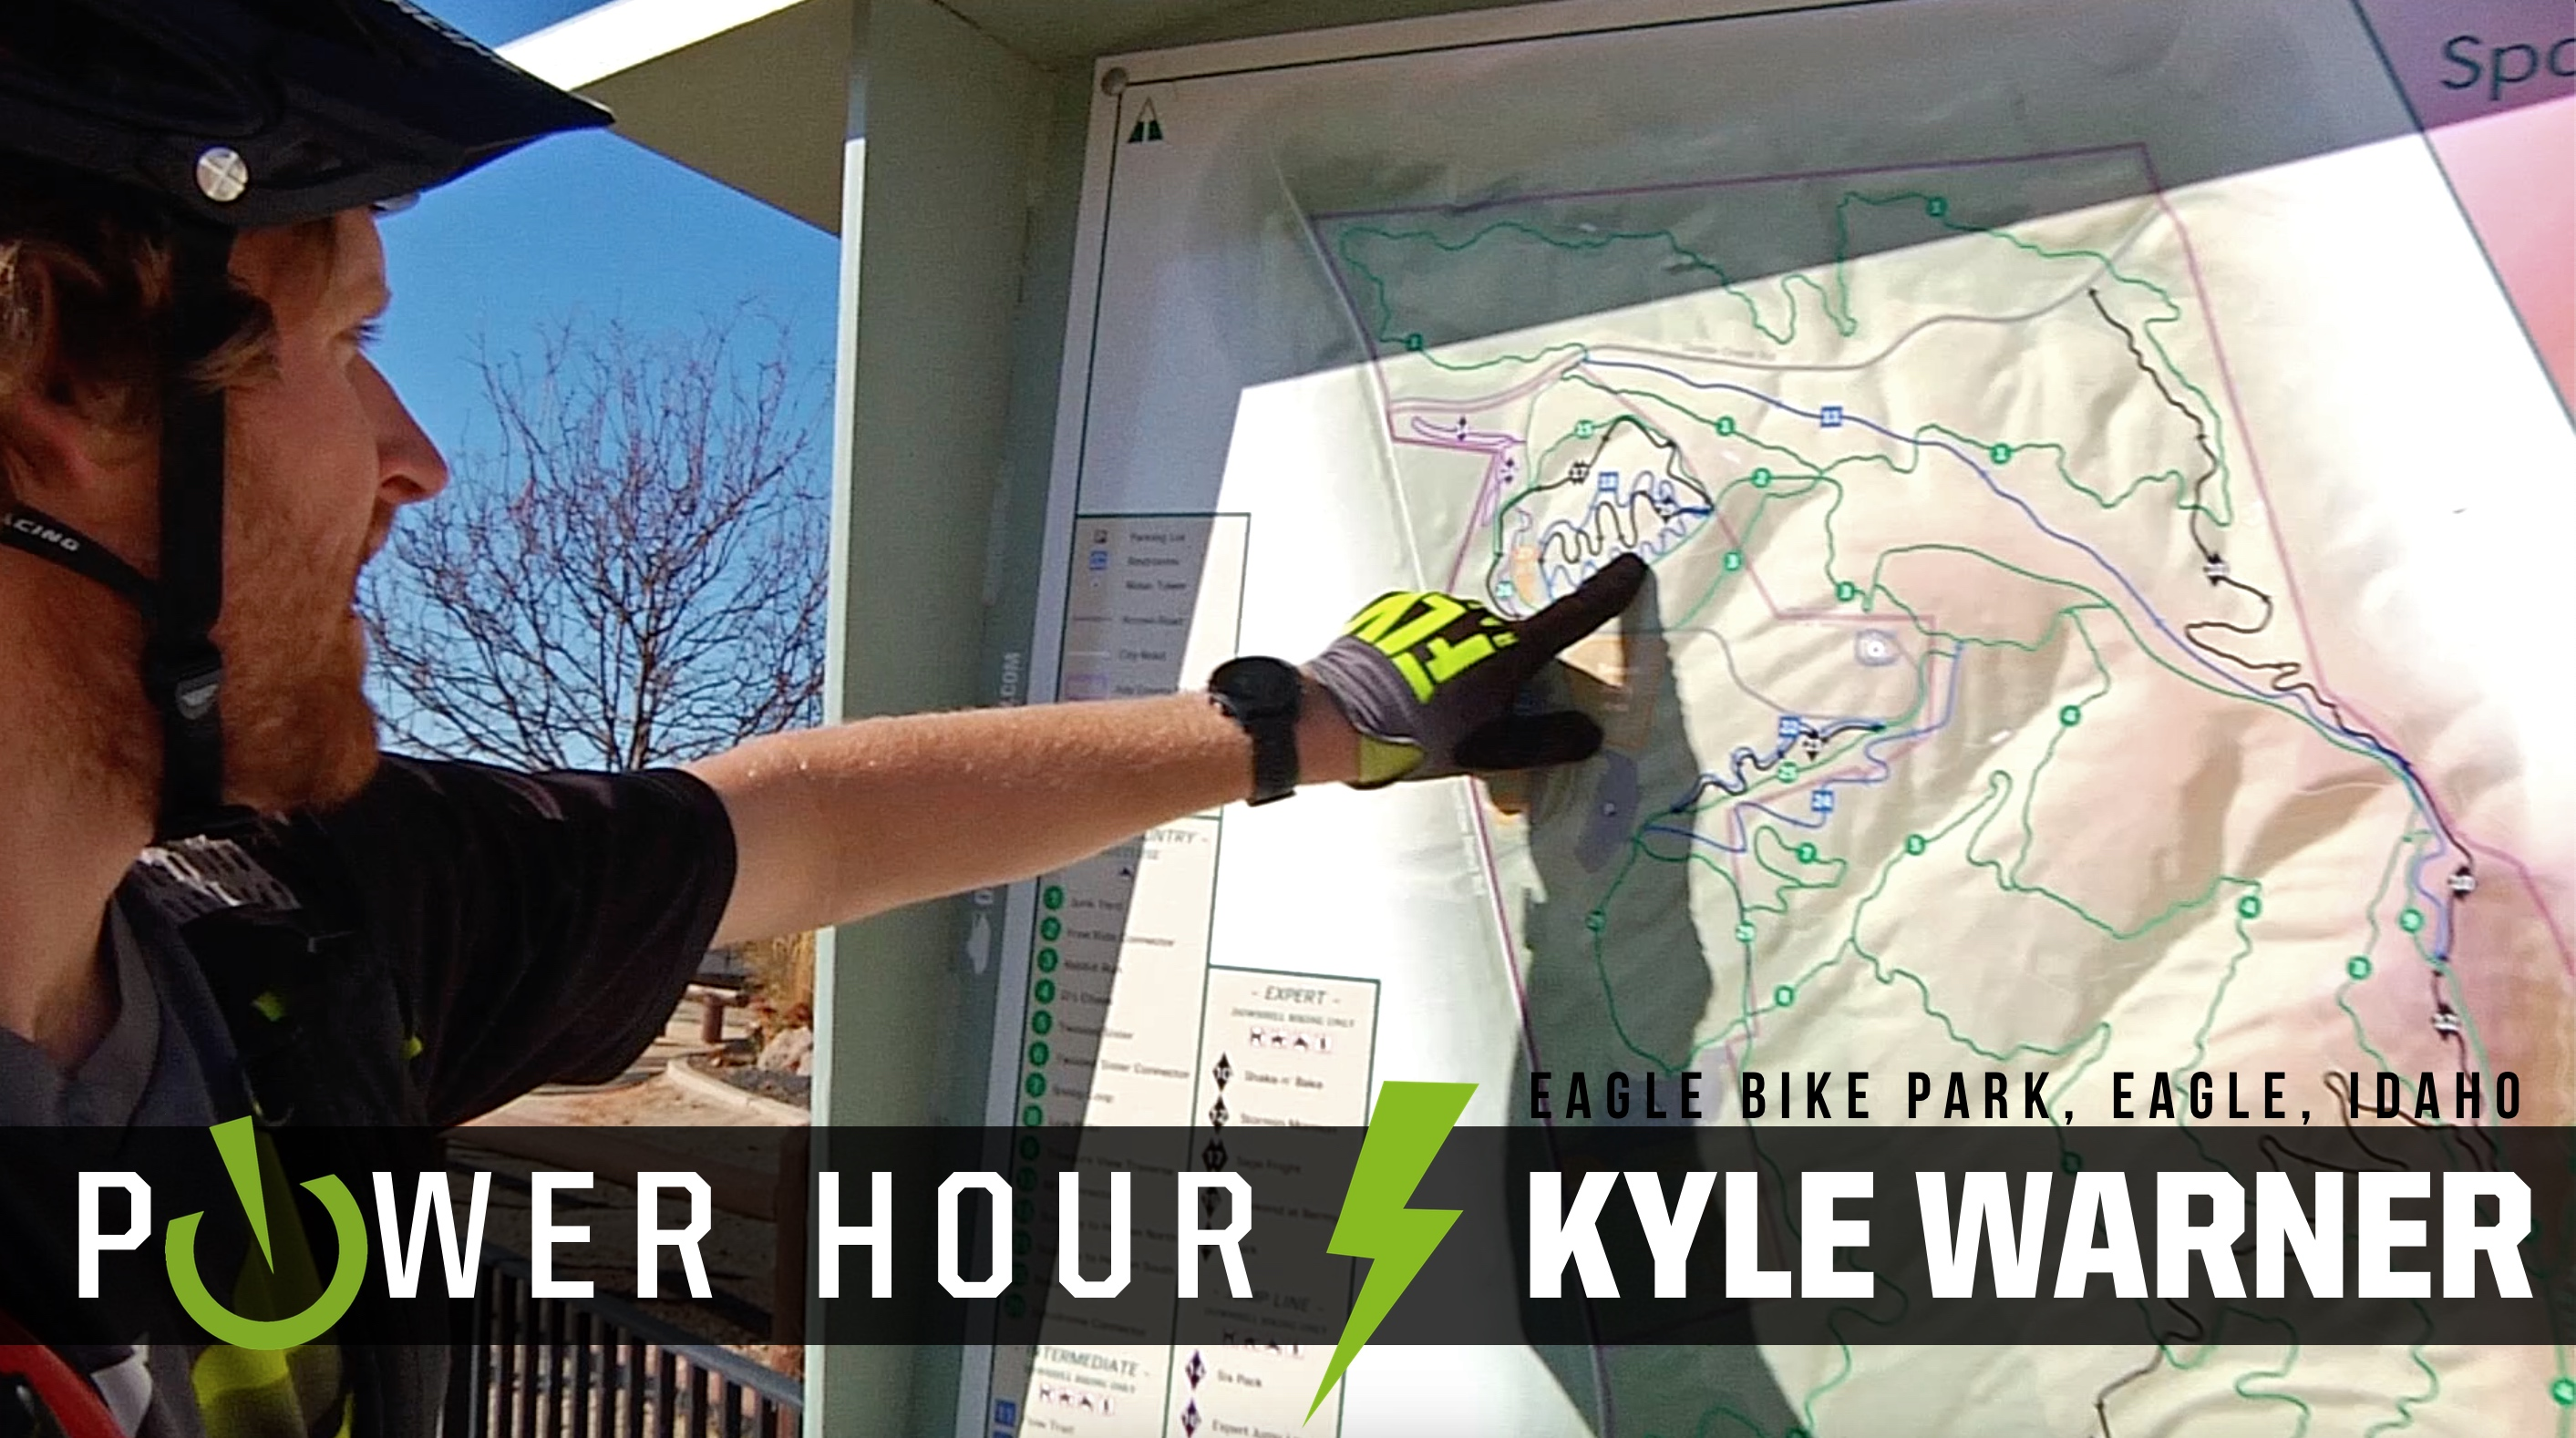 The Entire Bike Park in an Hour? Kyle Warner, Power Hour - Eagle, Idaho